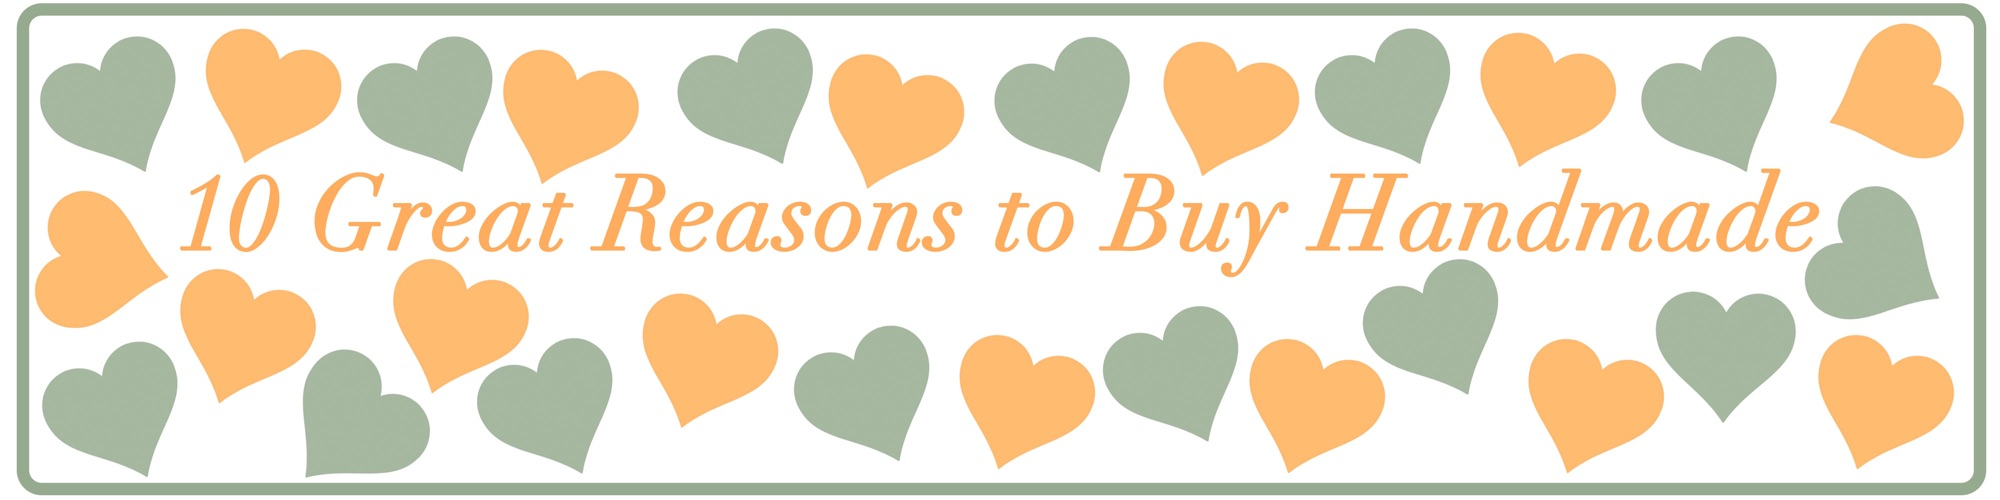 10-great-reasons-to-buy-handmade-blog-title